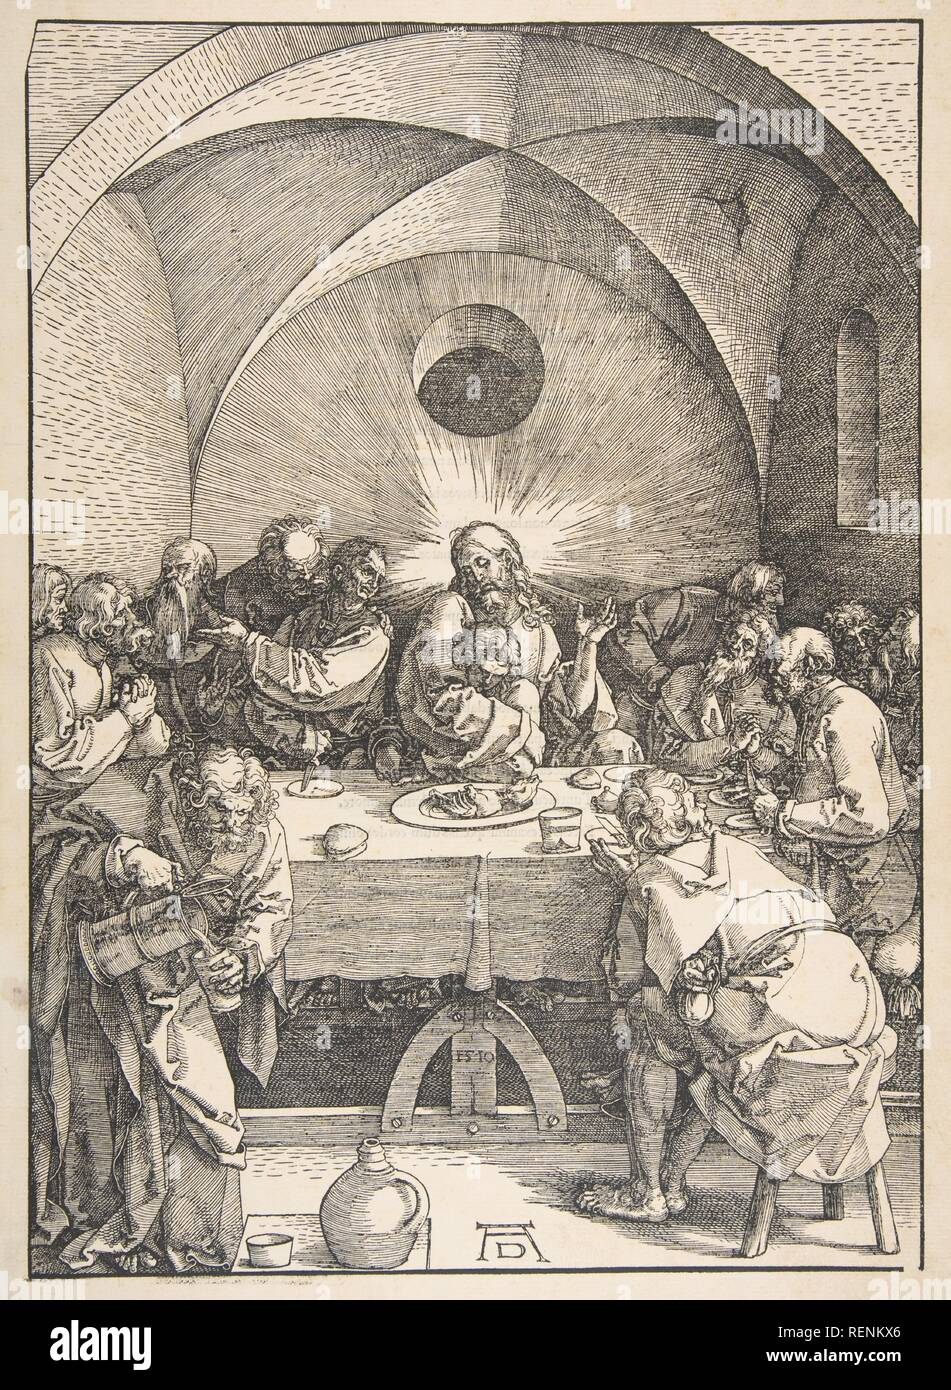 The Last Supper, from The Large Passion. Artist: Albrecht Dürer (German, Nuremberg 1471-1528 Nuremberg). Dimensions: sheet: 17 5/16 x 12 1/16 in. (43.9 x 30.6 cm)  image: 11 3/16 in. (28.4 cm). Date: n.d.. Museum: Metropolitan Museum of Art, New York, USA. - Stock Image